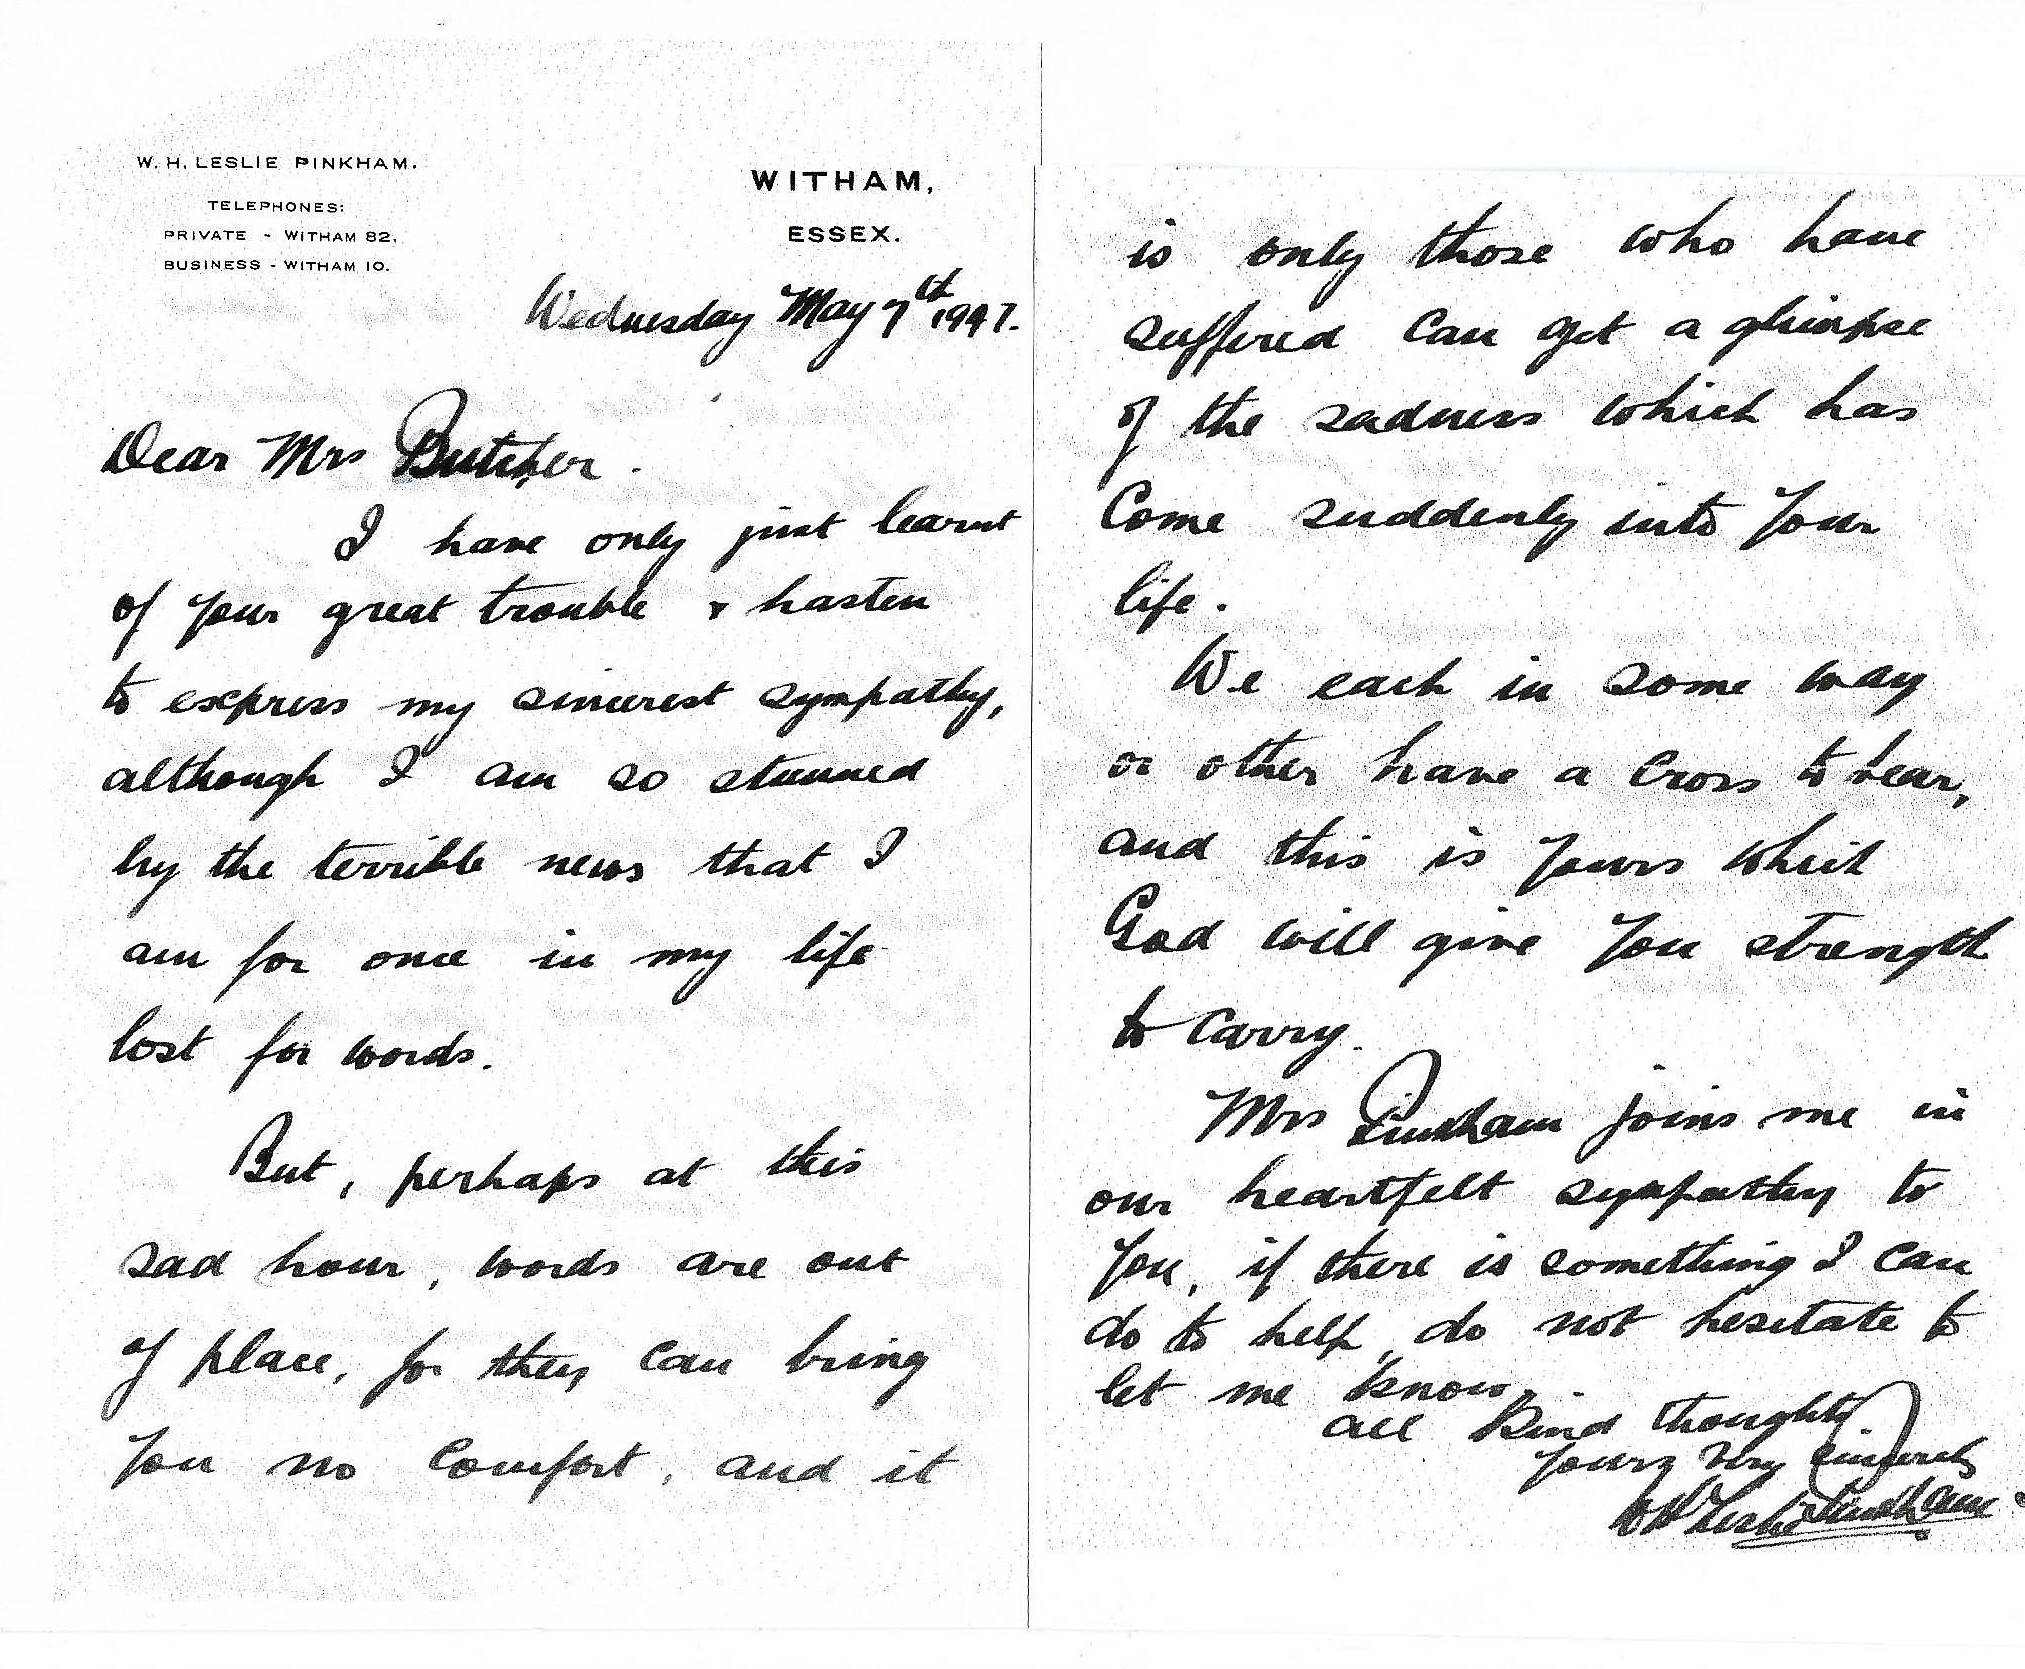 Letter WHLP to Mrs Butcher